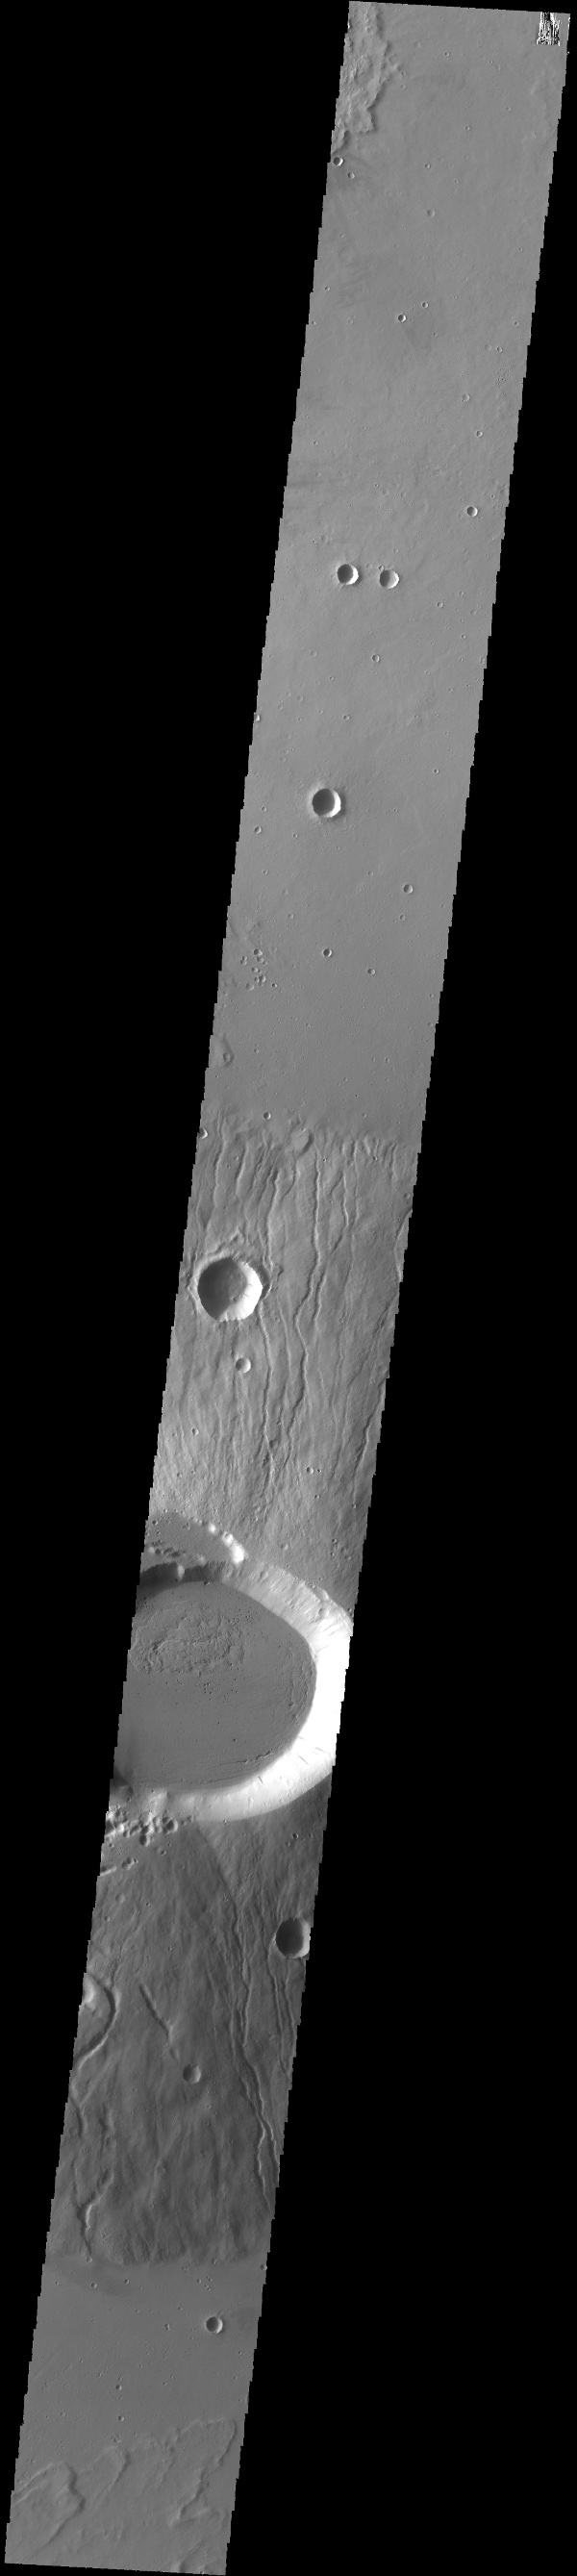 This image captured by NASA's 2001 Mars Odyssey spacecraft crosses the summit of Ceraunius Tholus.